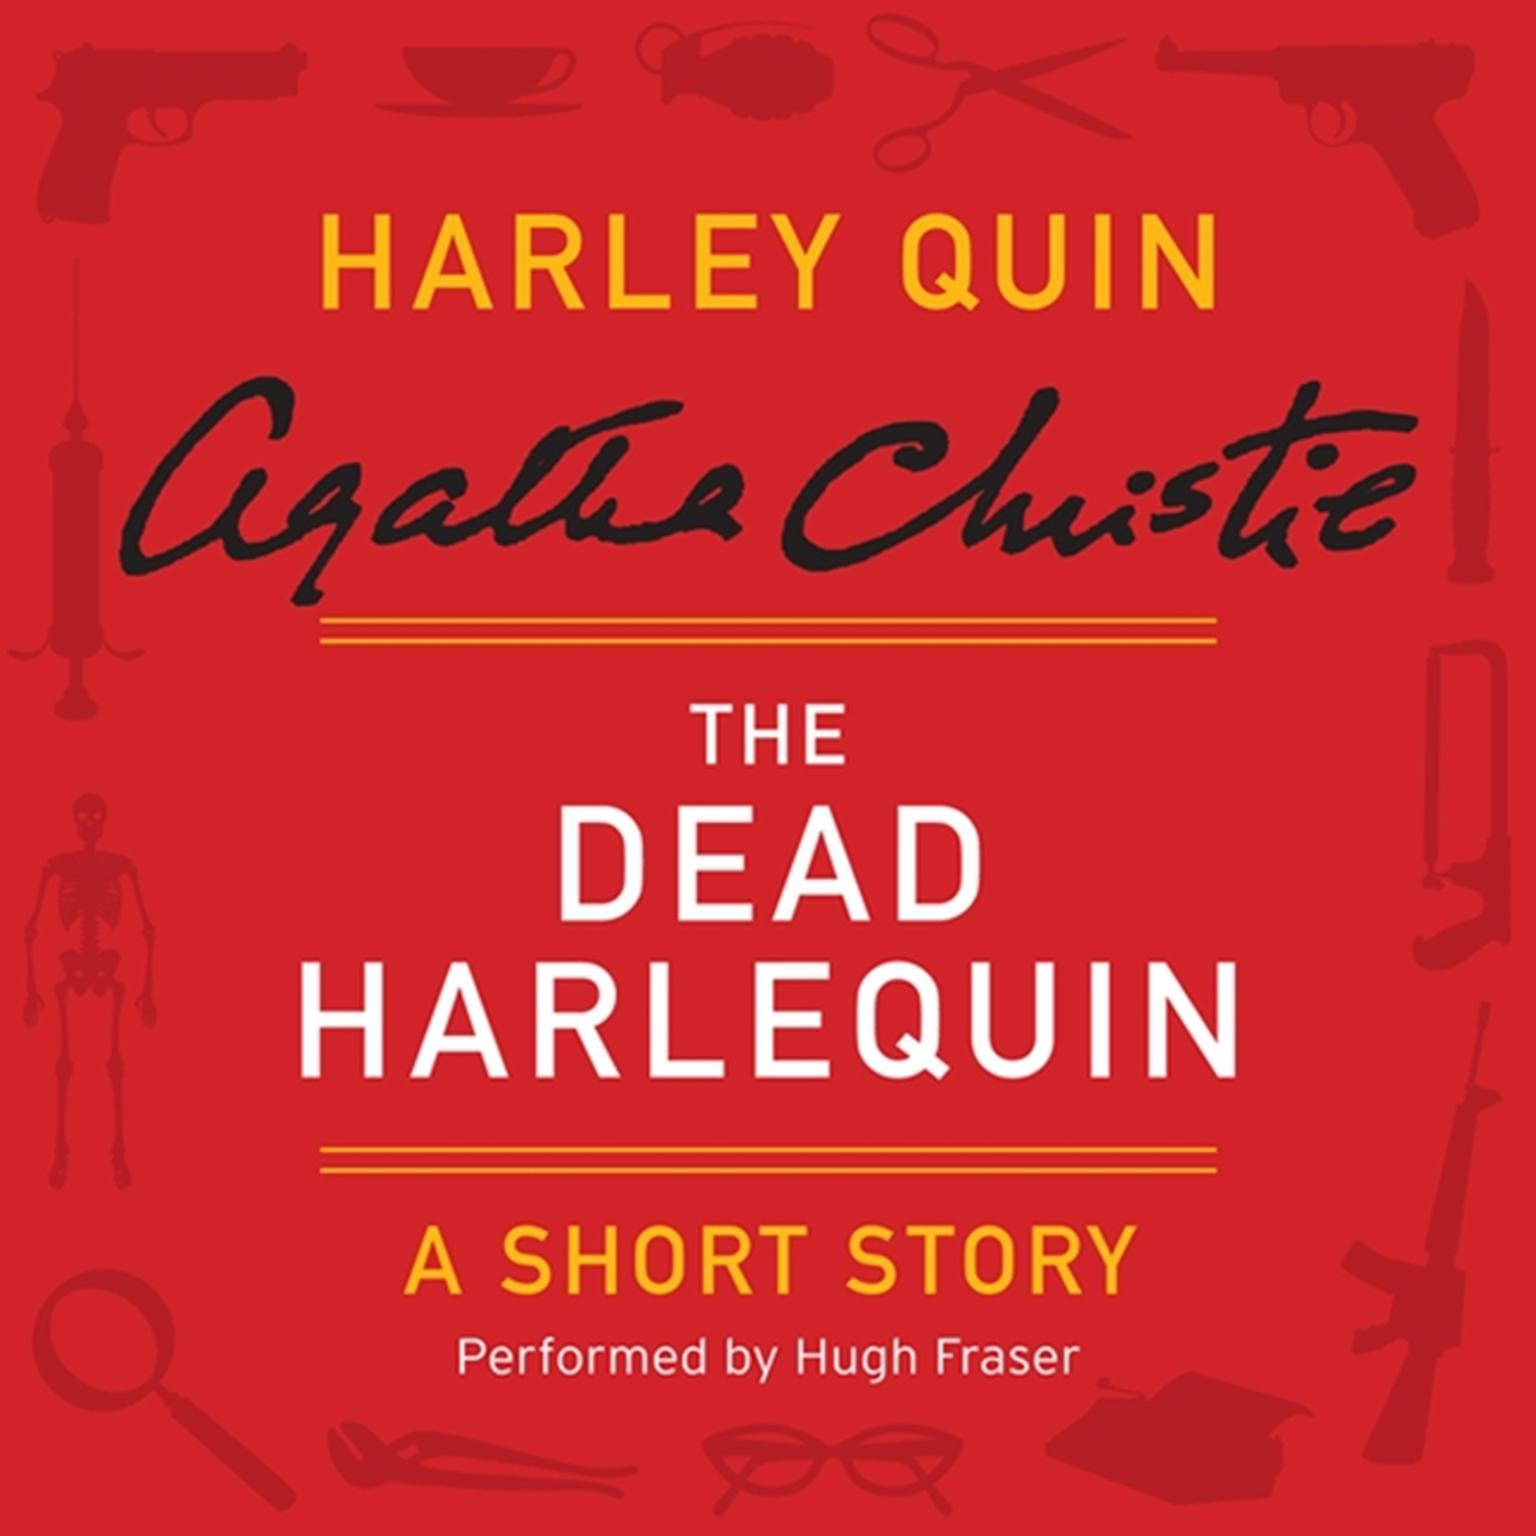 Printable The Dead Harlequin: A Harley Quin Short Story Audiobook Cover Art